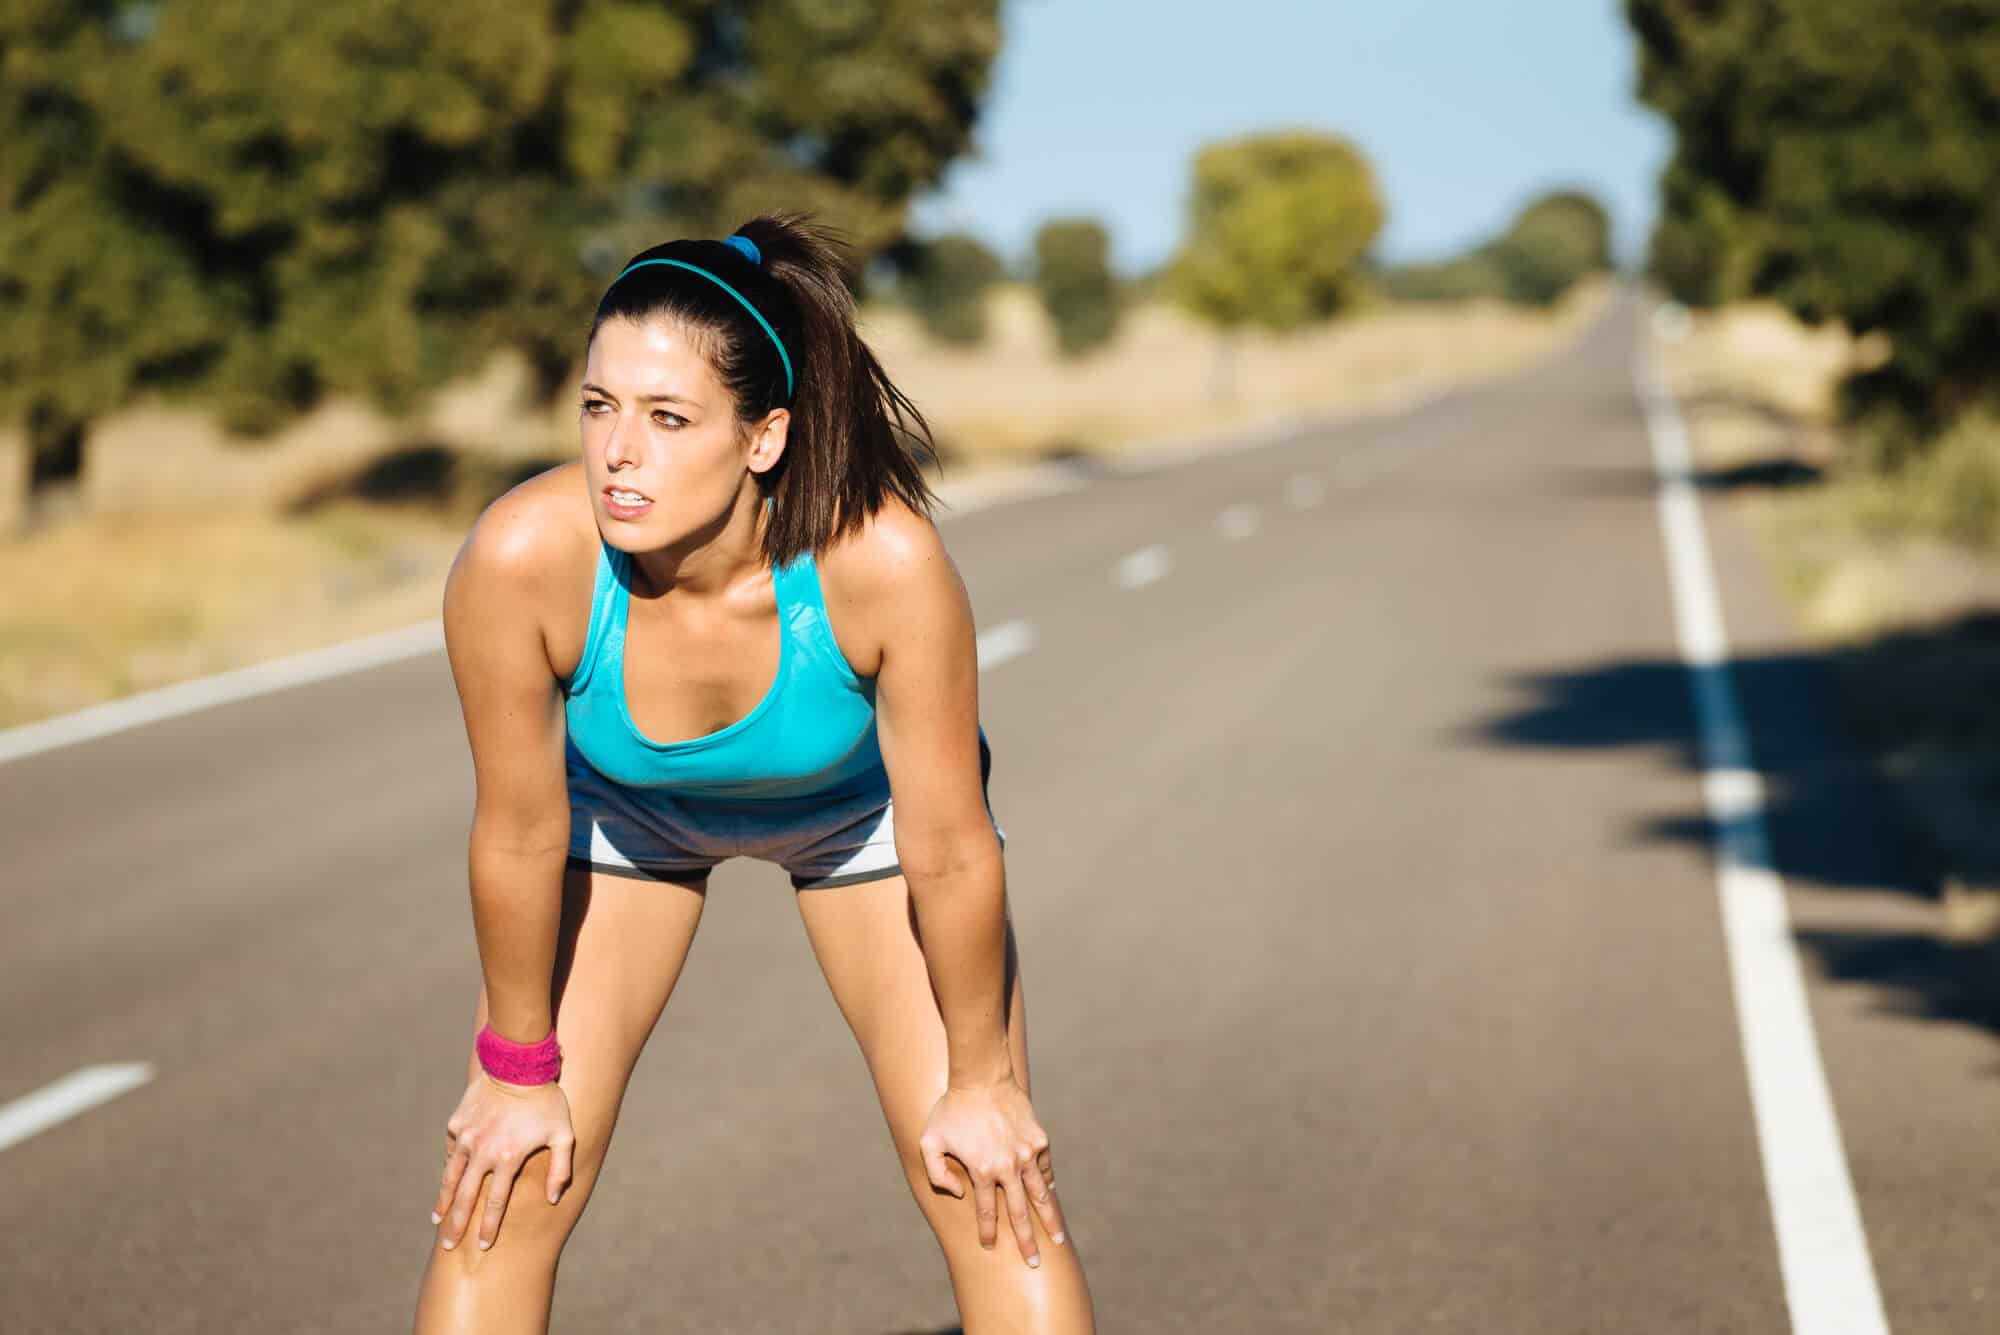 The recommended breathing technique for running is deep belly breathing through the mouth.